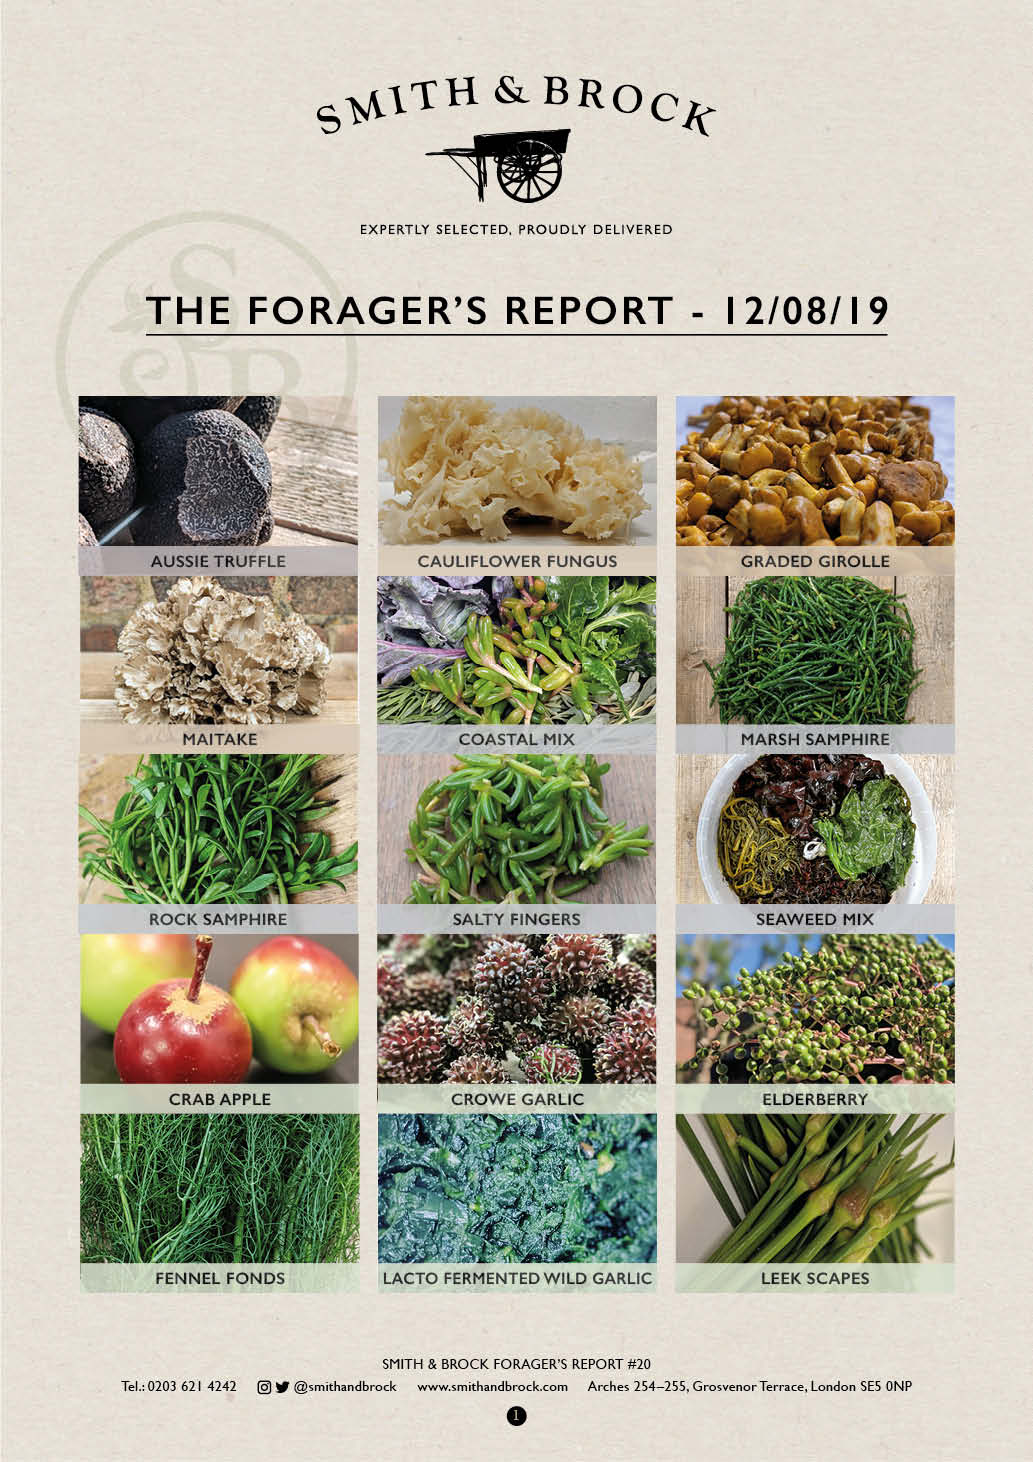 Smith&Brock Foraged Products Report 12 July 2019 20